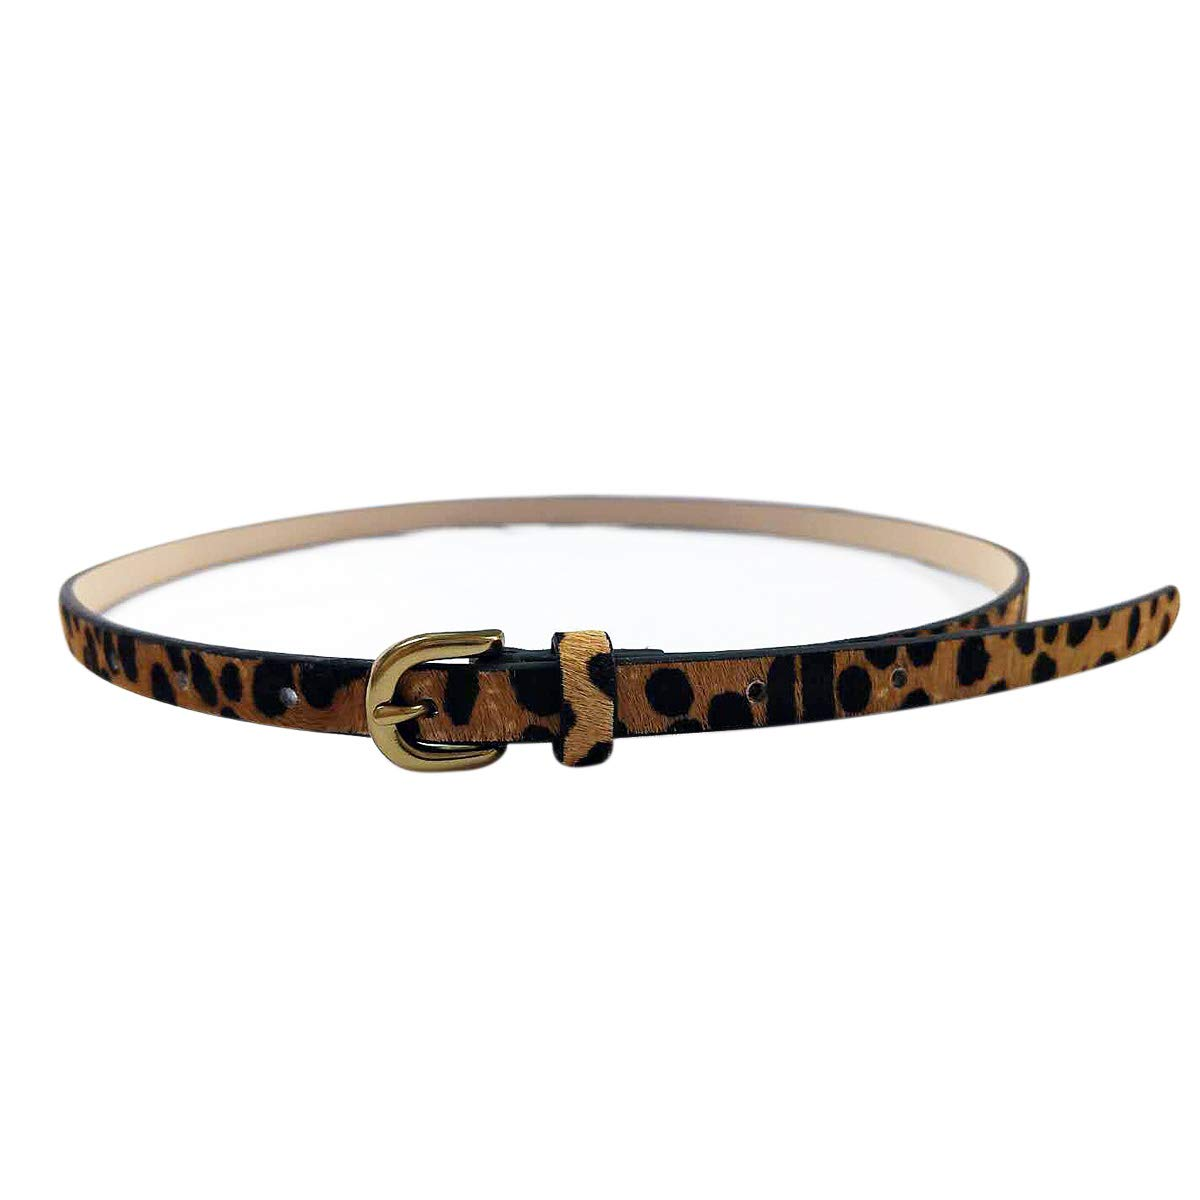 Leopard Print Belt Women's fashion leather Waist Belt Ladies Haircalf Belt Casual Waistband (S-(29.7''-35.8''))